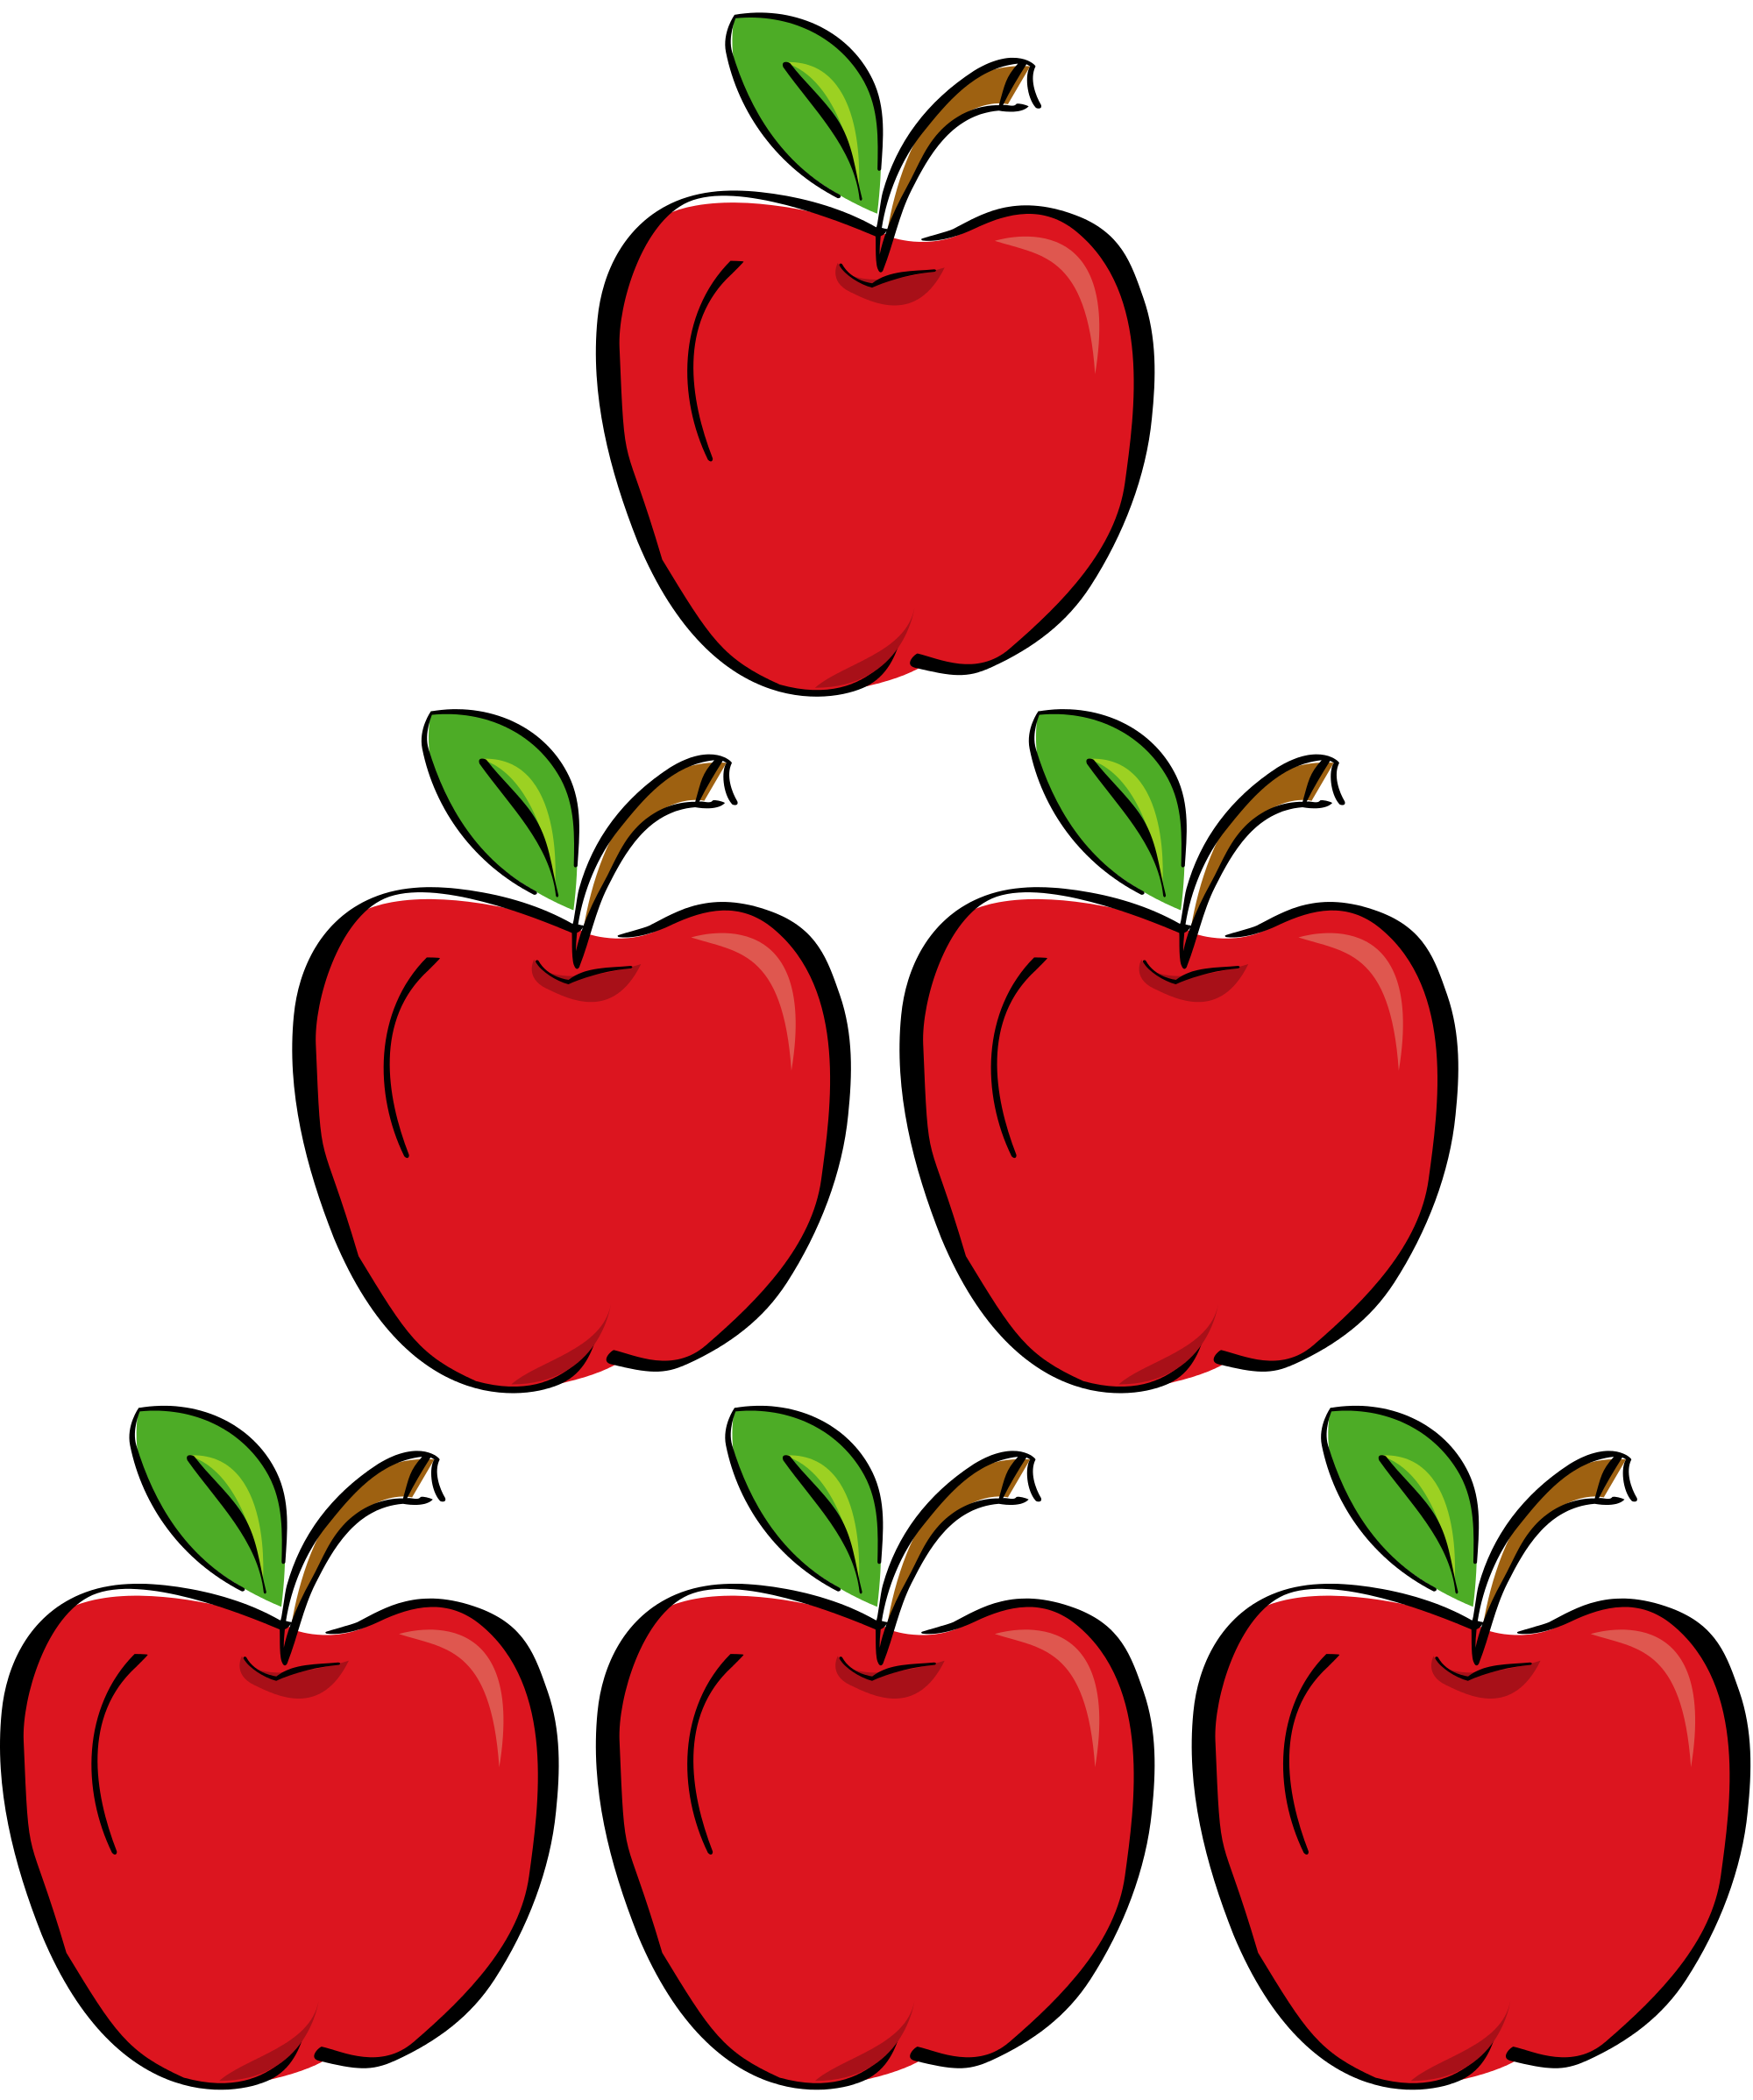 Apple heart clipart banner black and white stock File:Three apples.svg - Wikimedia Commons banner black and white stock